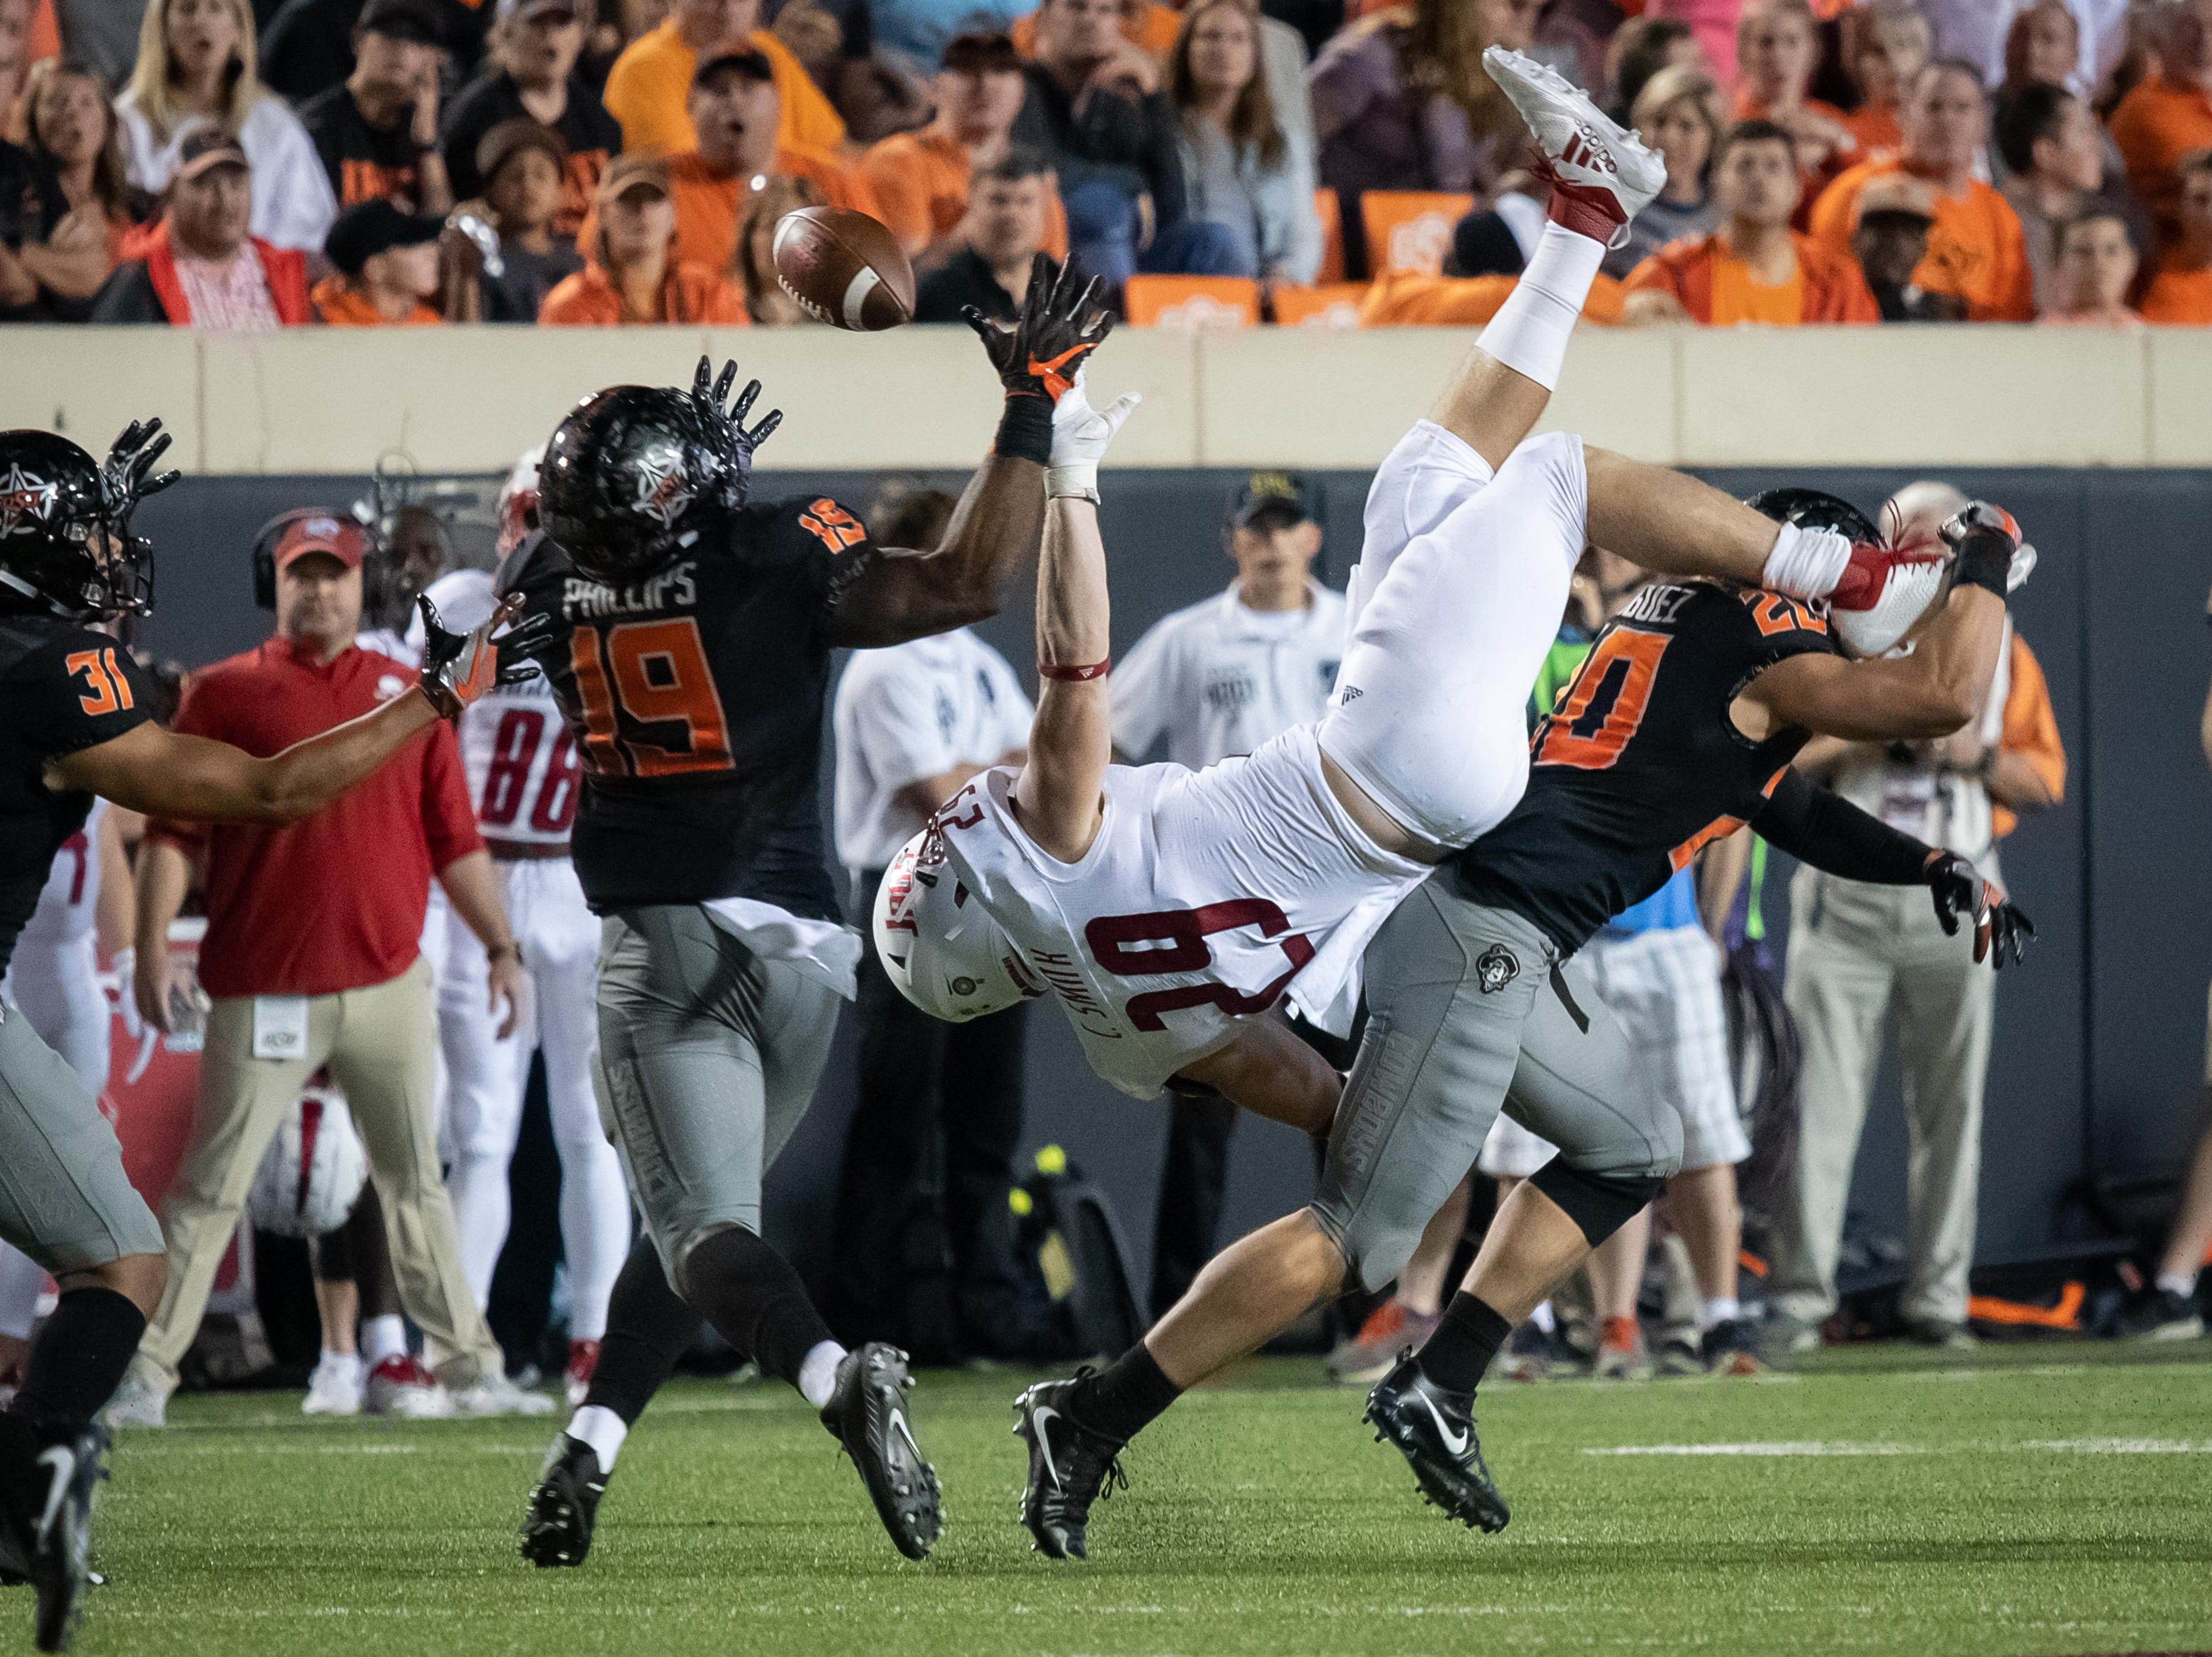 Oklahoma State Cowboys safety Malcolm Rodriguez (20) breaks up a pass intended for South Alabama Jaguars tight end Collier Smith (29) during the second half at Boone Pickens Stadium.